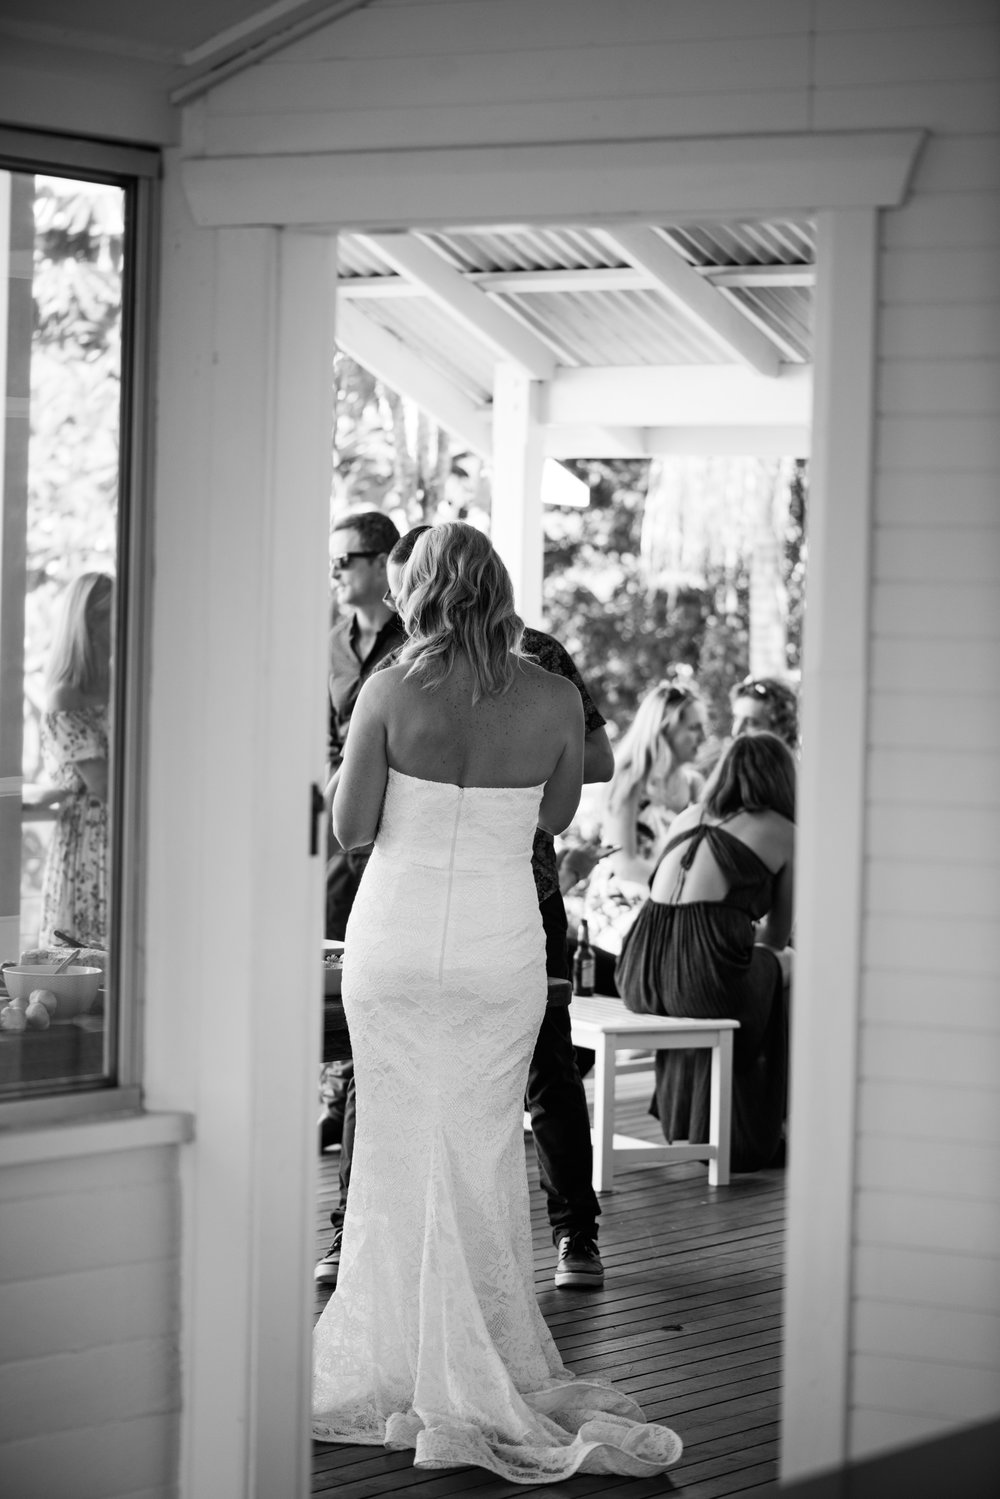 Renee and Matt- wedding photographer, byron bay wedding and family photographer, tweed heads wedding and family photography-598.jpg